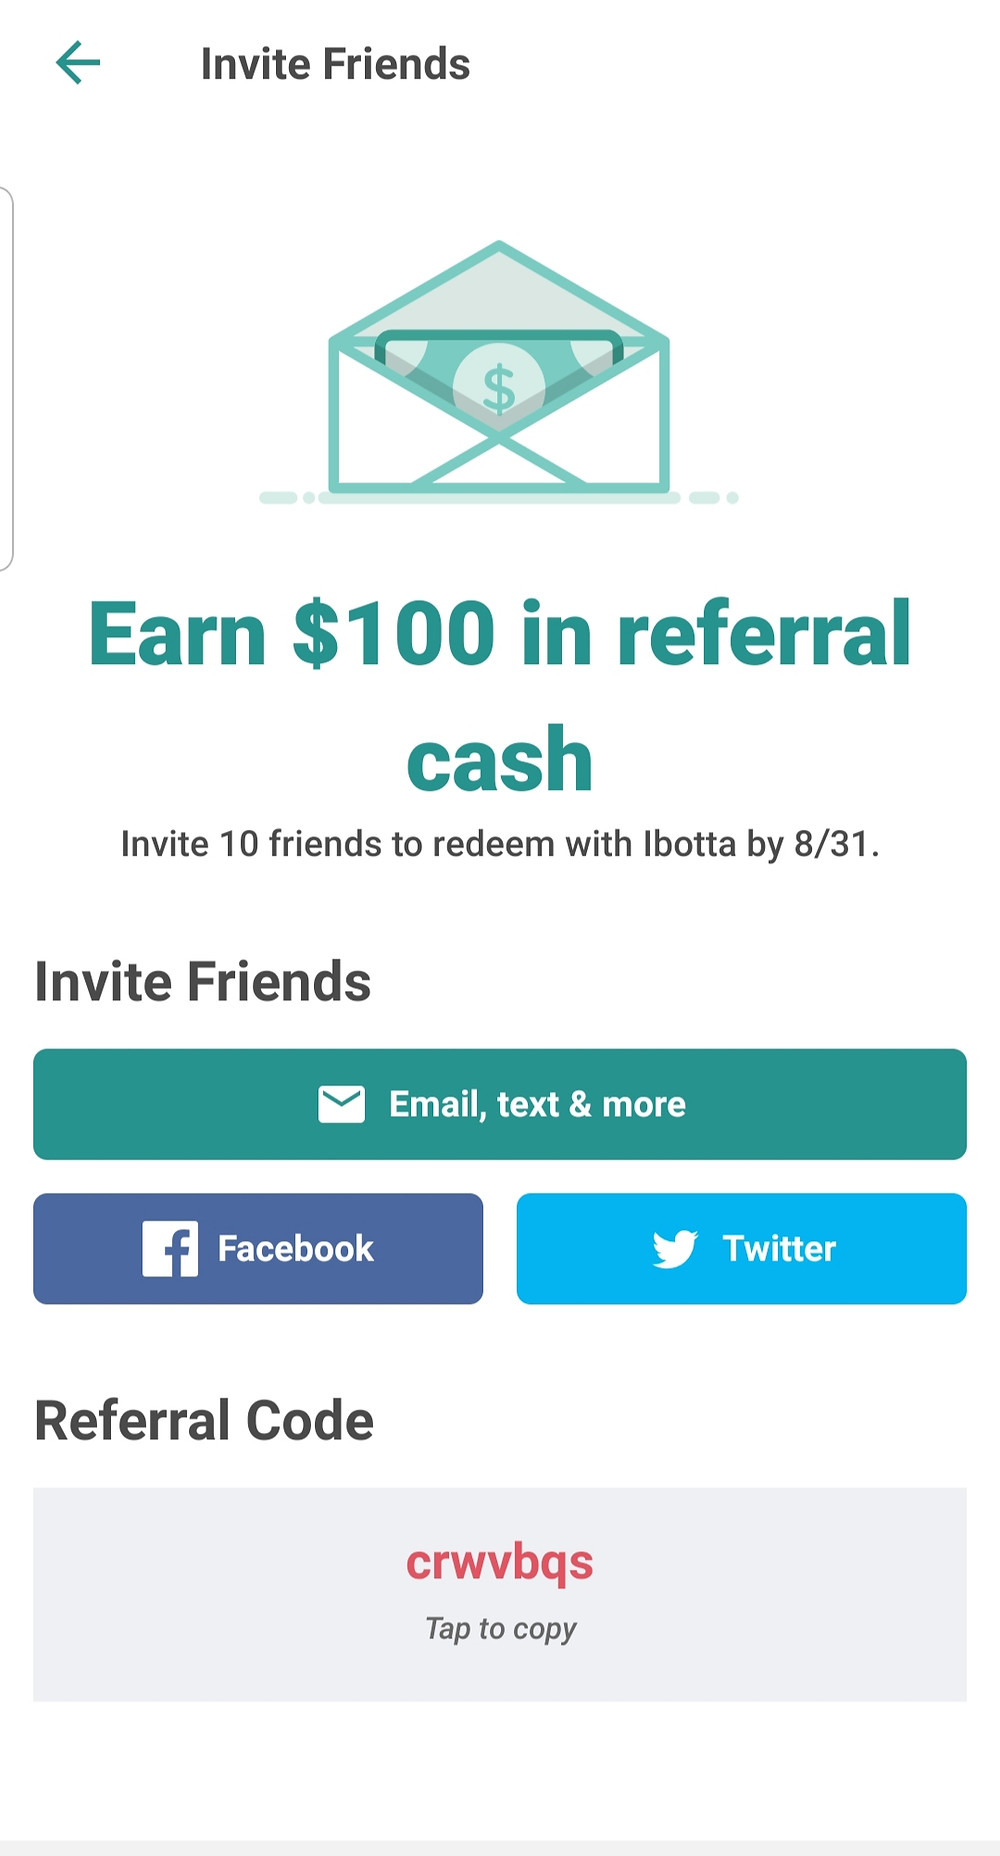 Learn how to use Ibotta: You can earn more money by inviting friends and family and working as a team to complete challenges.